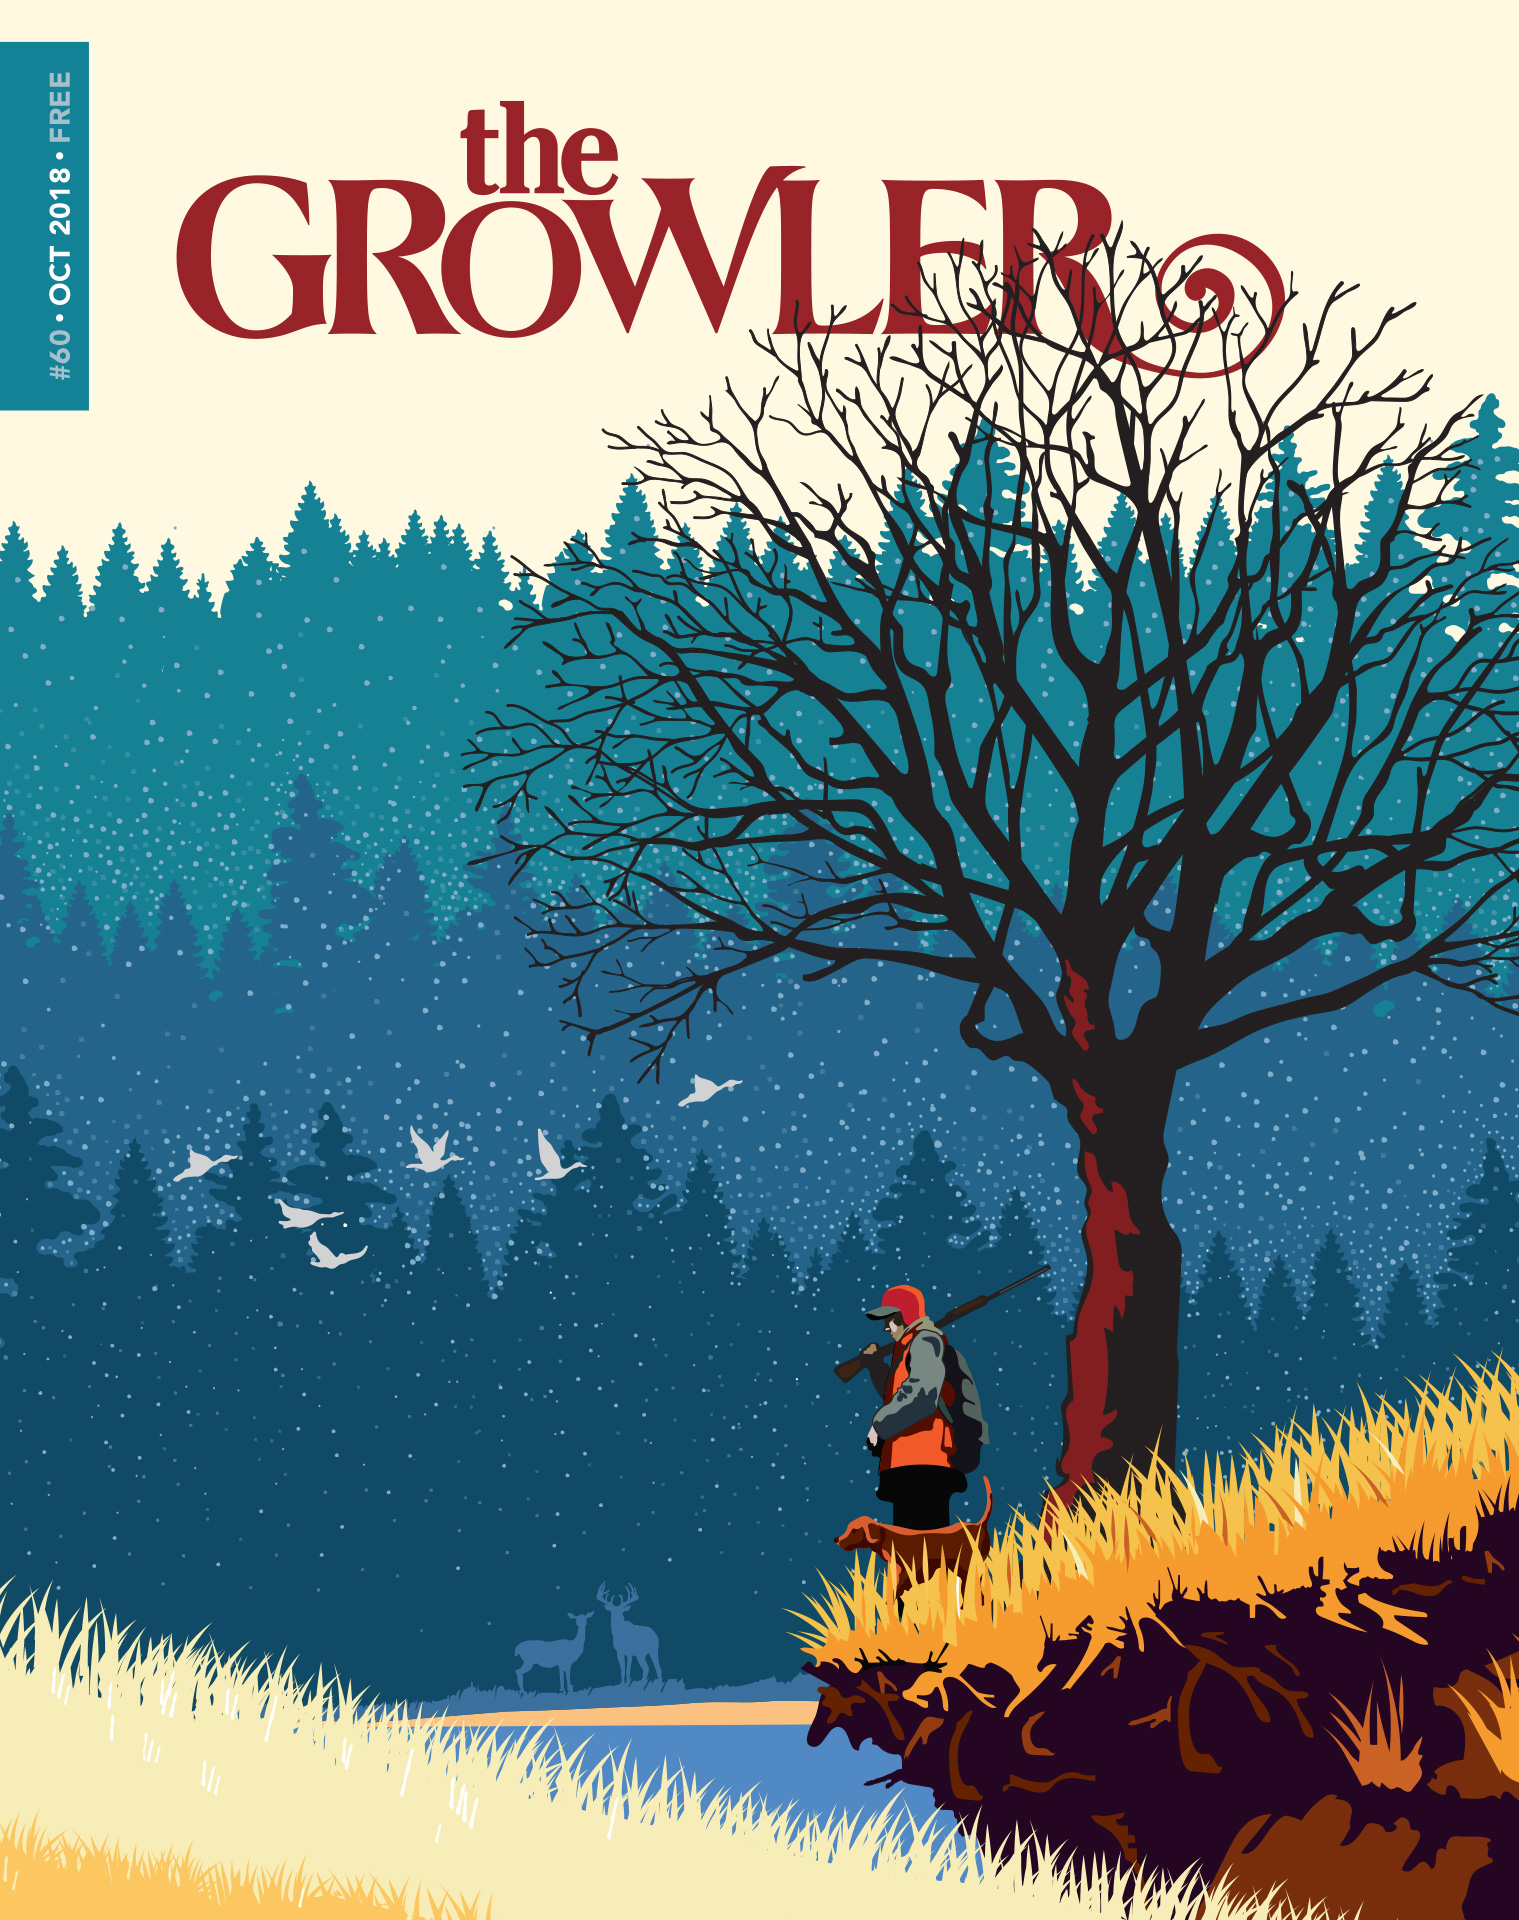 """The October """"Sporting Life"""" cover of The Growler by Mark Herman"""